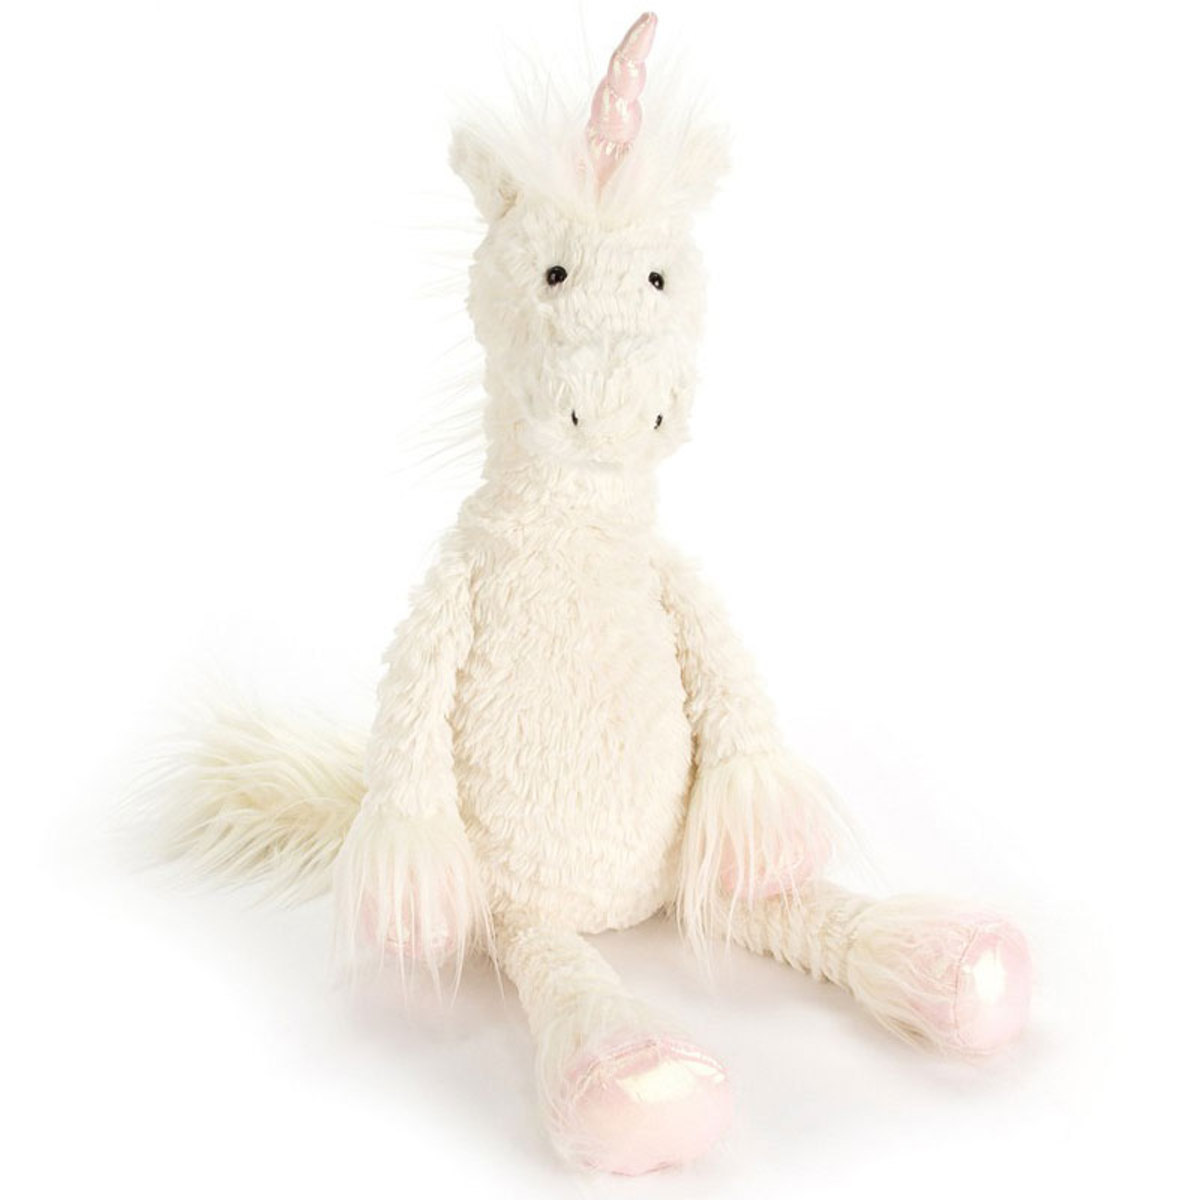 Peluche Dainty Unicorn Medium Dainty Unicorn Medium